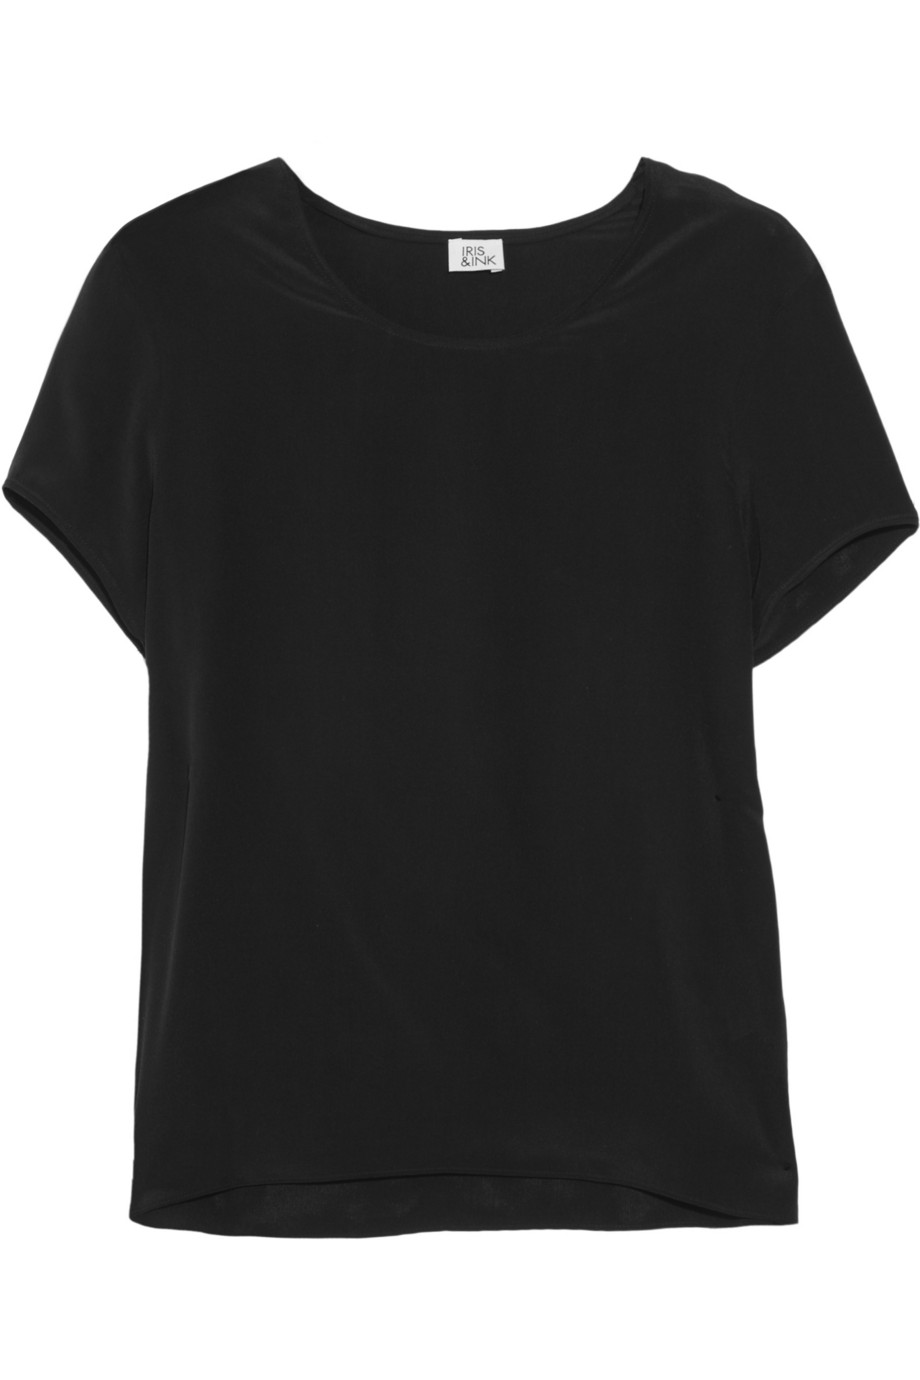 Iris Amp Ink Silk Crepe De Chine T Shirt Exclusively For